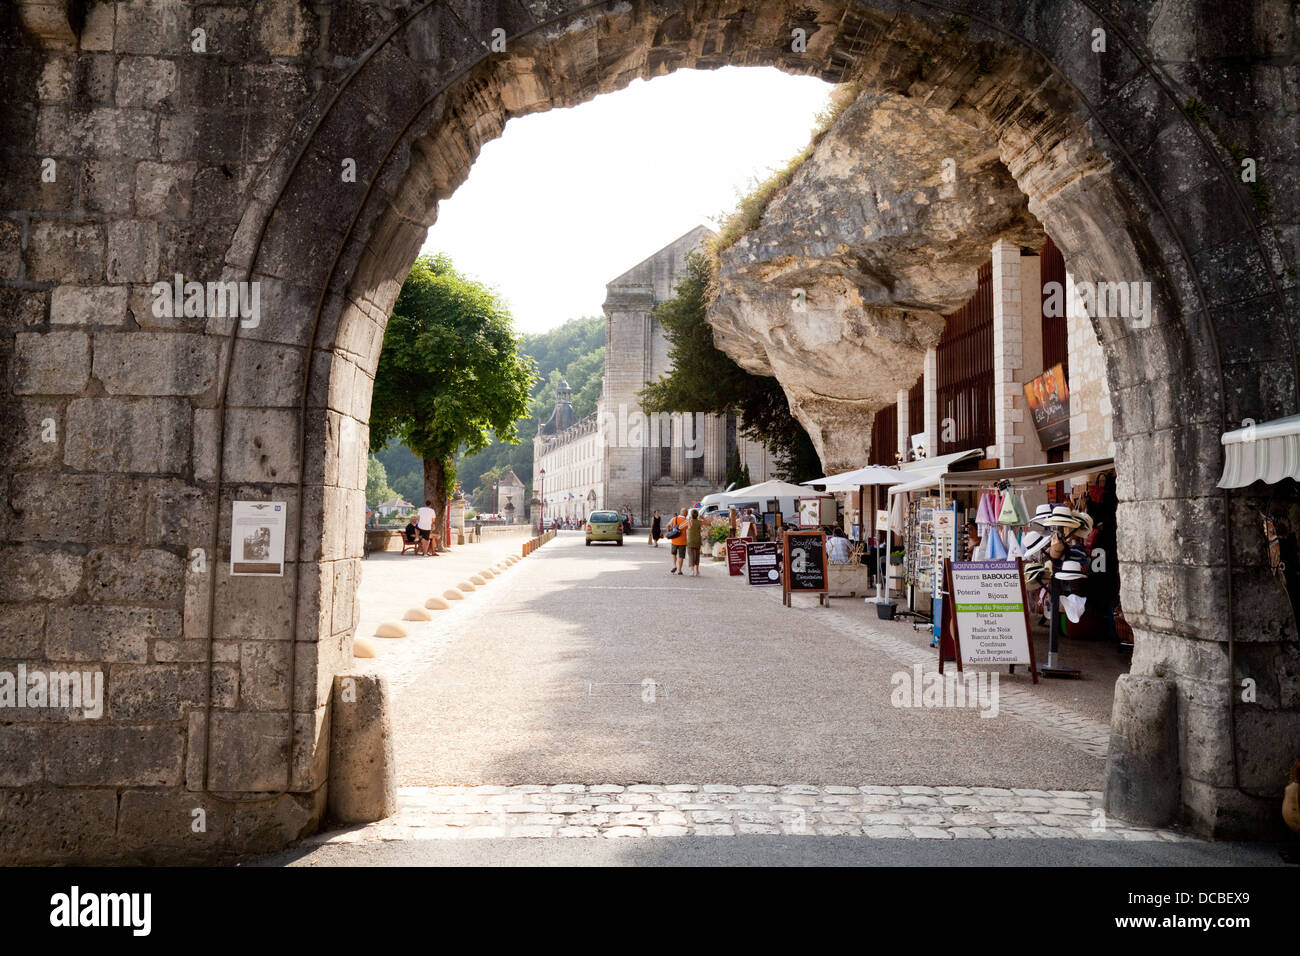 street view through an arch french village of brantome perigord stock photo 59260161 alamy. Black Bedroom Furniture Sets. Home Design Ideas